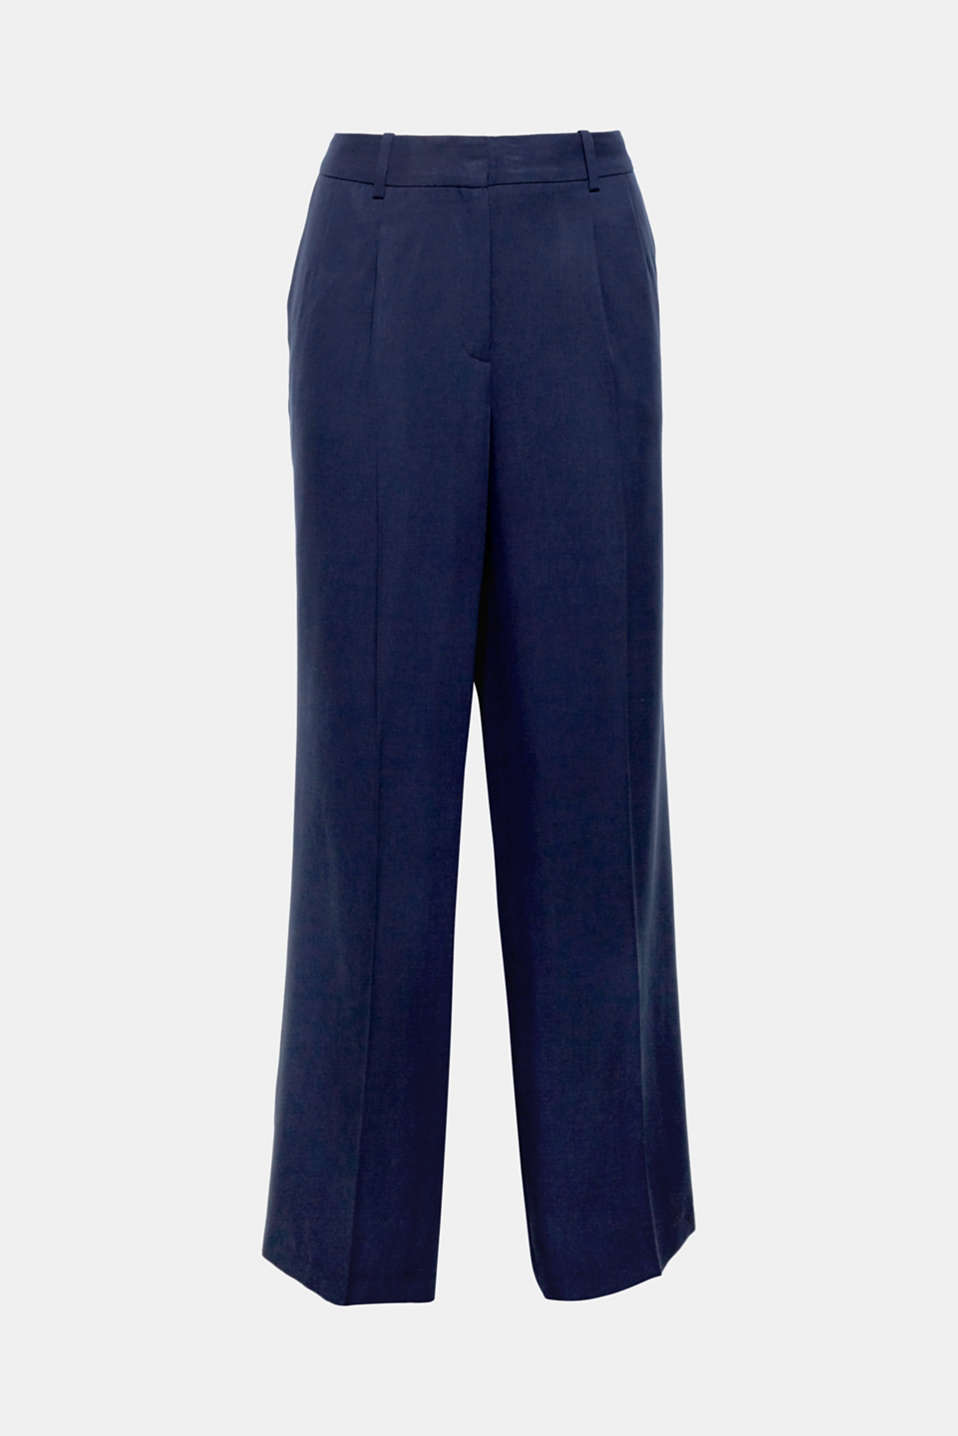 With a matching blazer or on their own: the finely textured outer surface and wide fit give these trousers an incredibly fashionable touch and make them a light and airy fashion piece.